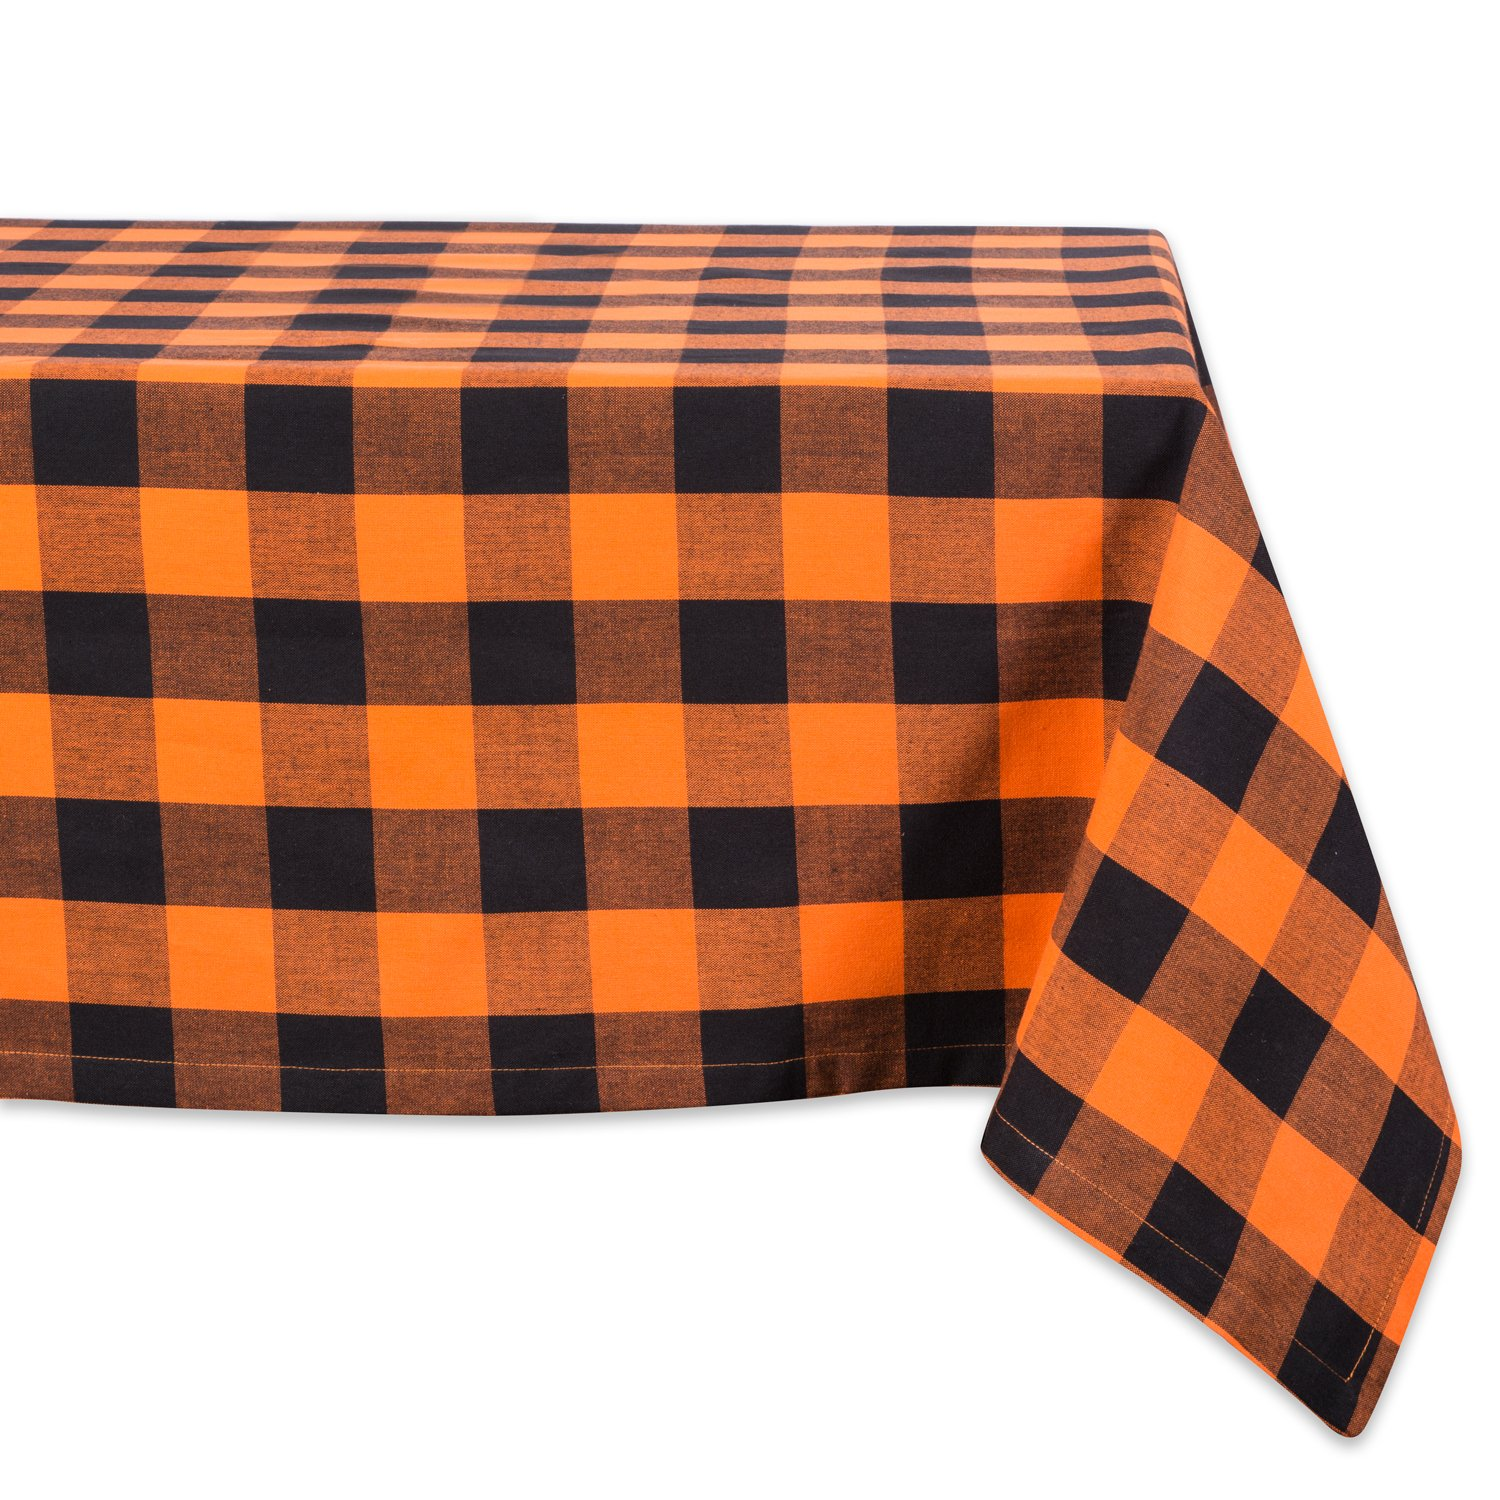 DII Cotton Buffalo Check Plaid Rectangle Tablecloth for Family Dinners or Gatherings, Indoor or Outdoor Parties, Everyday Use (60x120, Seats 10-12 People), Orange & Black by DII